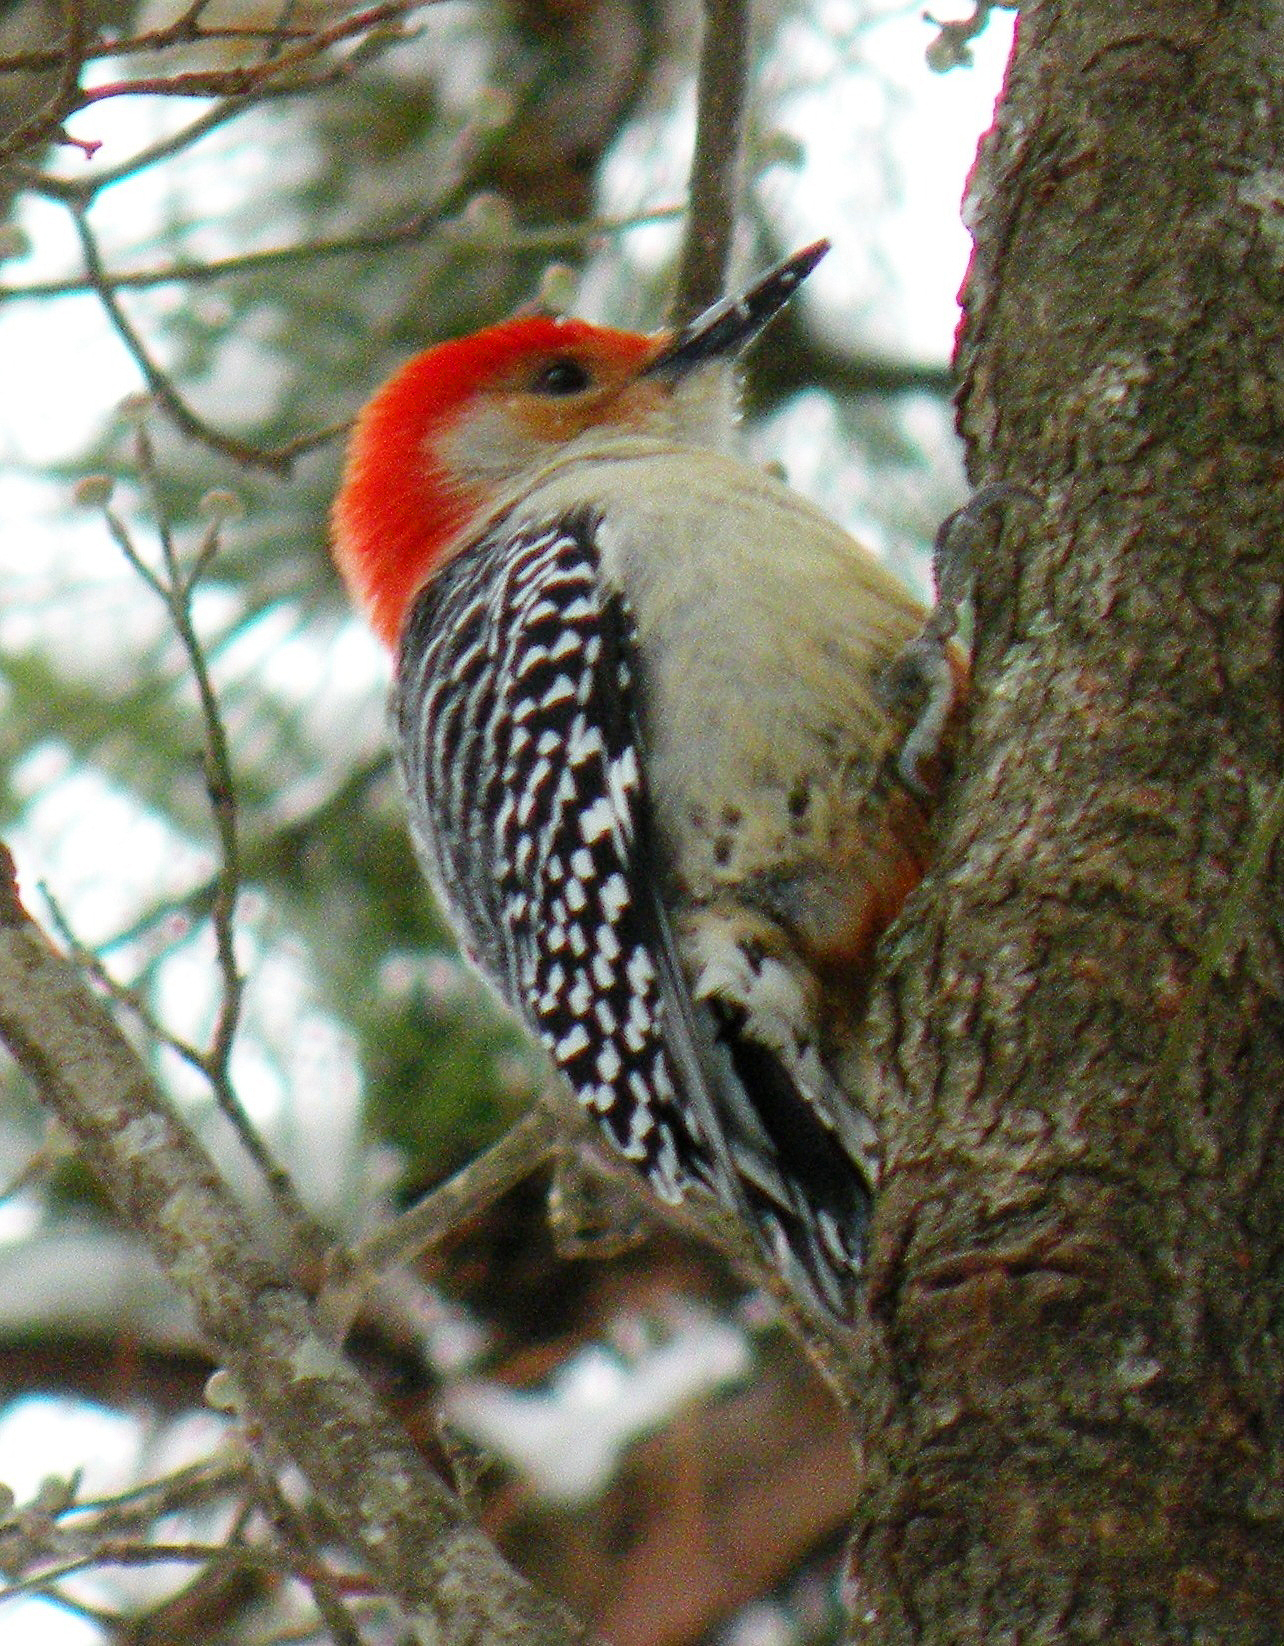 This woodpecker has red on both its head and belly